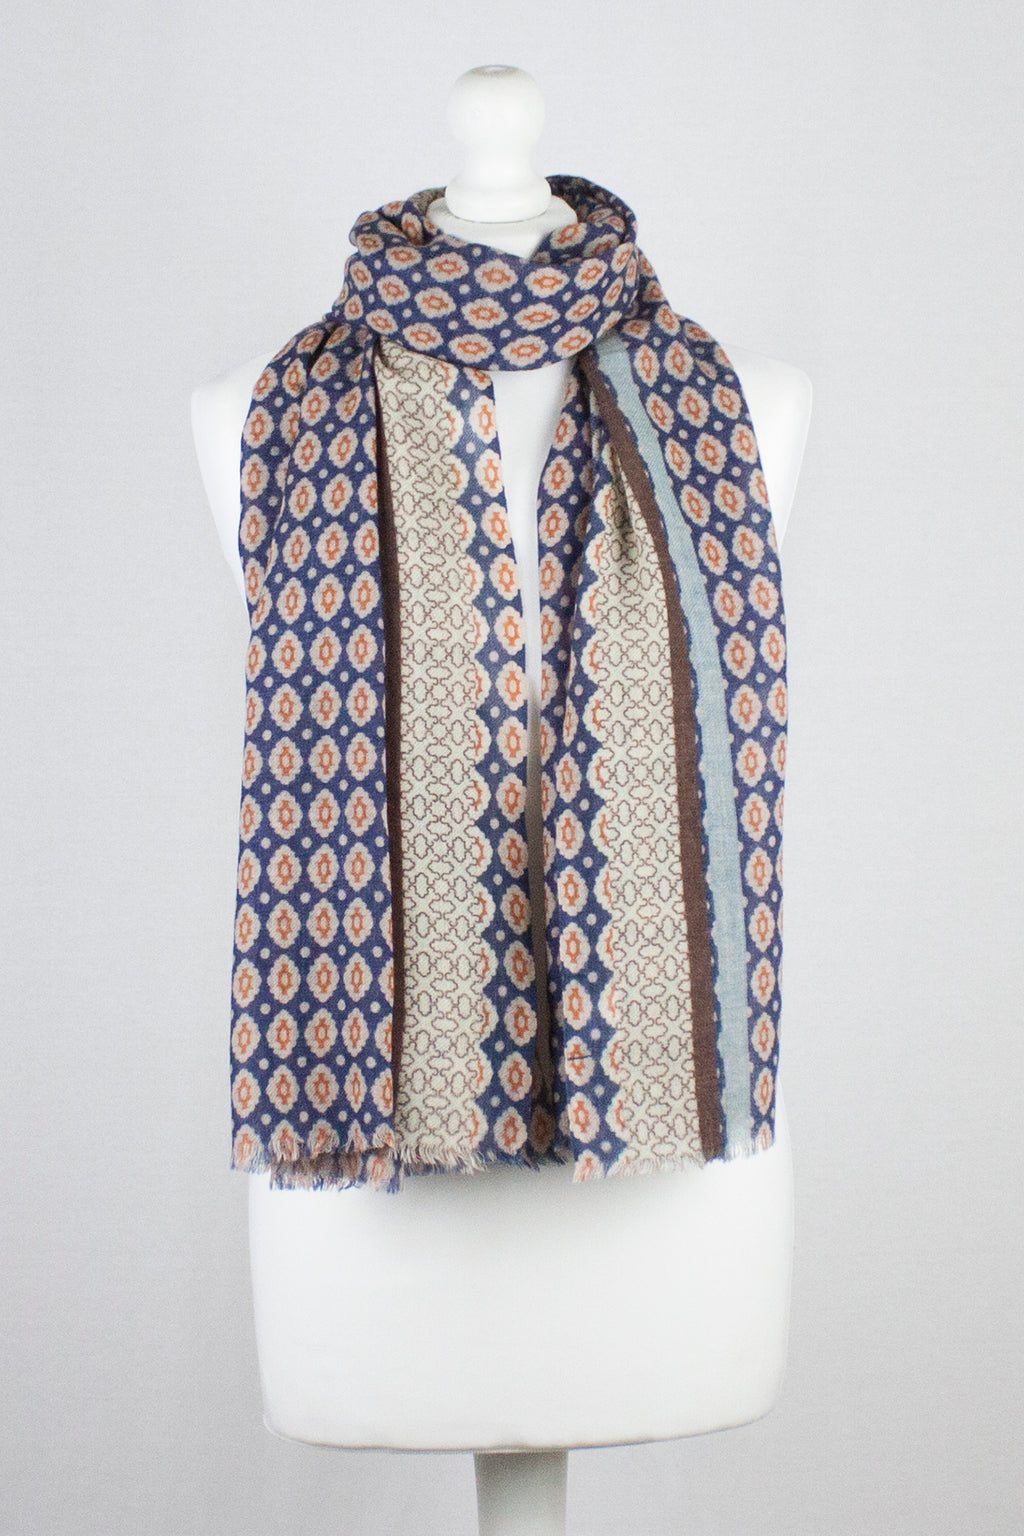 Diamond Tile Print w/ Border Merino Wool Scarf - Navy Orange